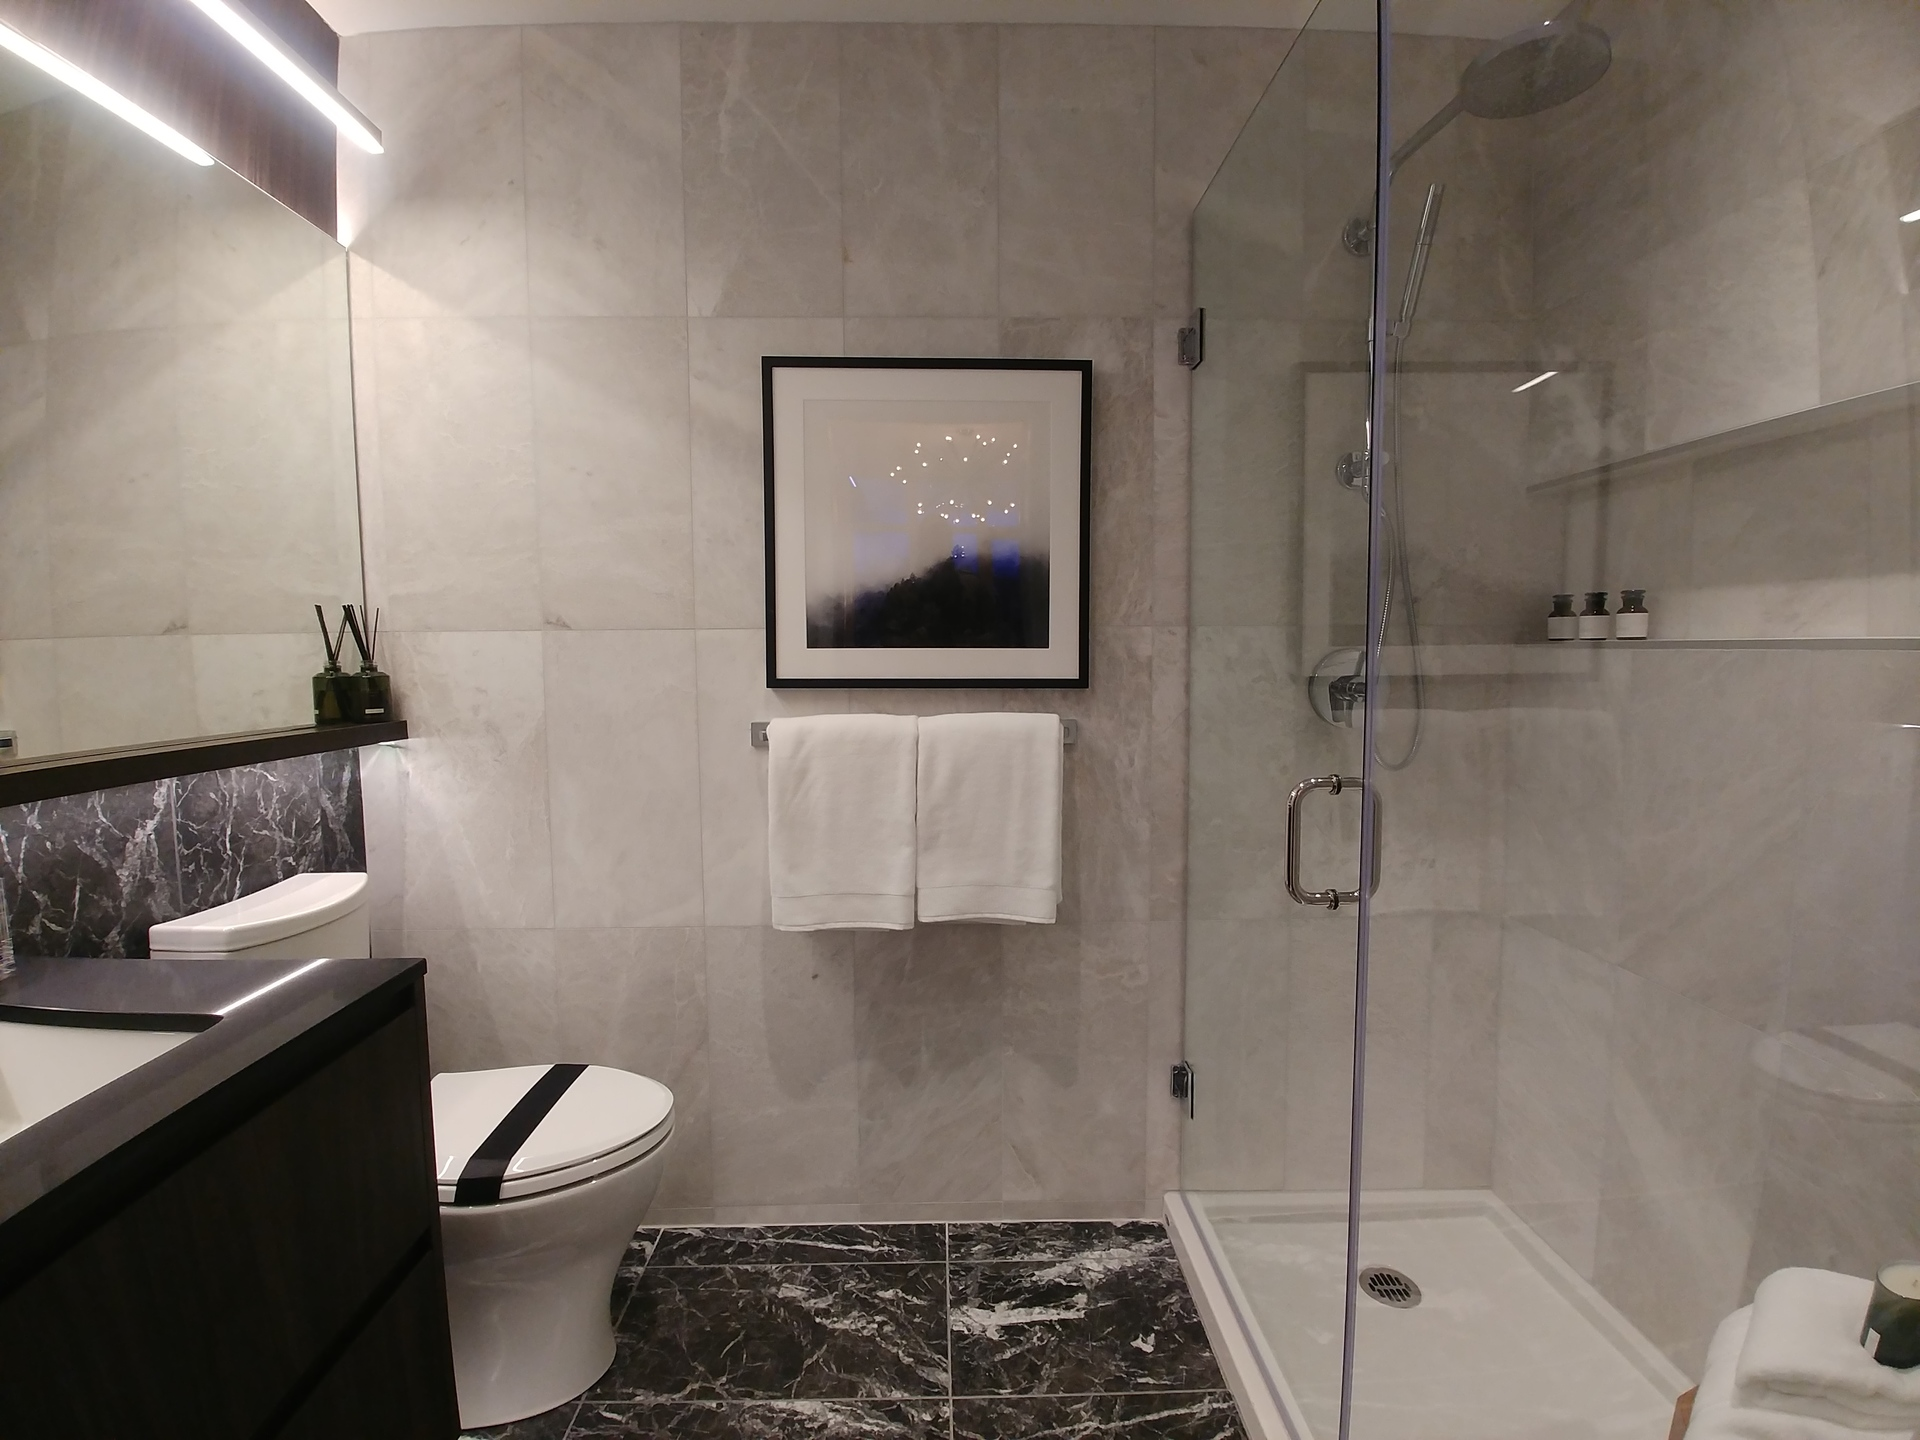 highline-c-plan-ensuite-in-dark-scheme-with-fully-tiled-walls at Highline (6811 Sussex Street, Metrotown, Burnaby South)